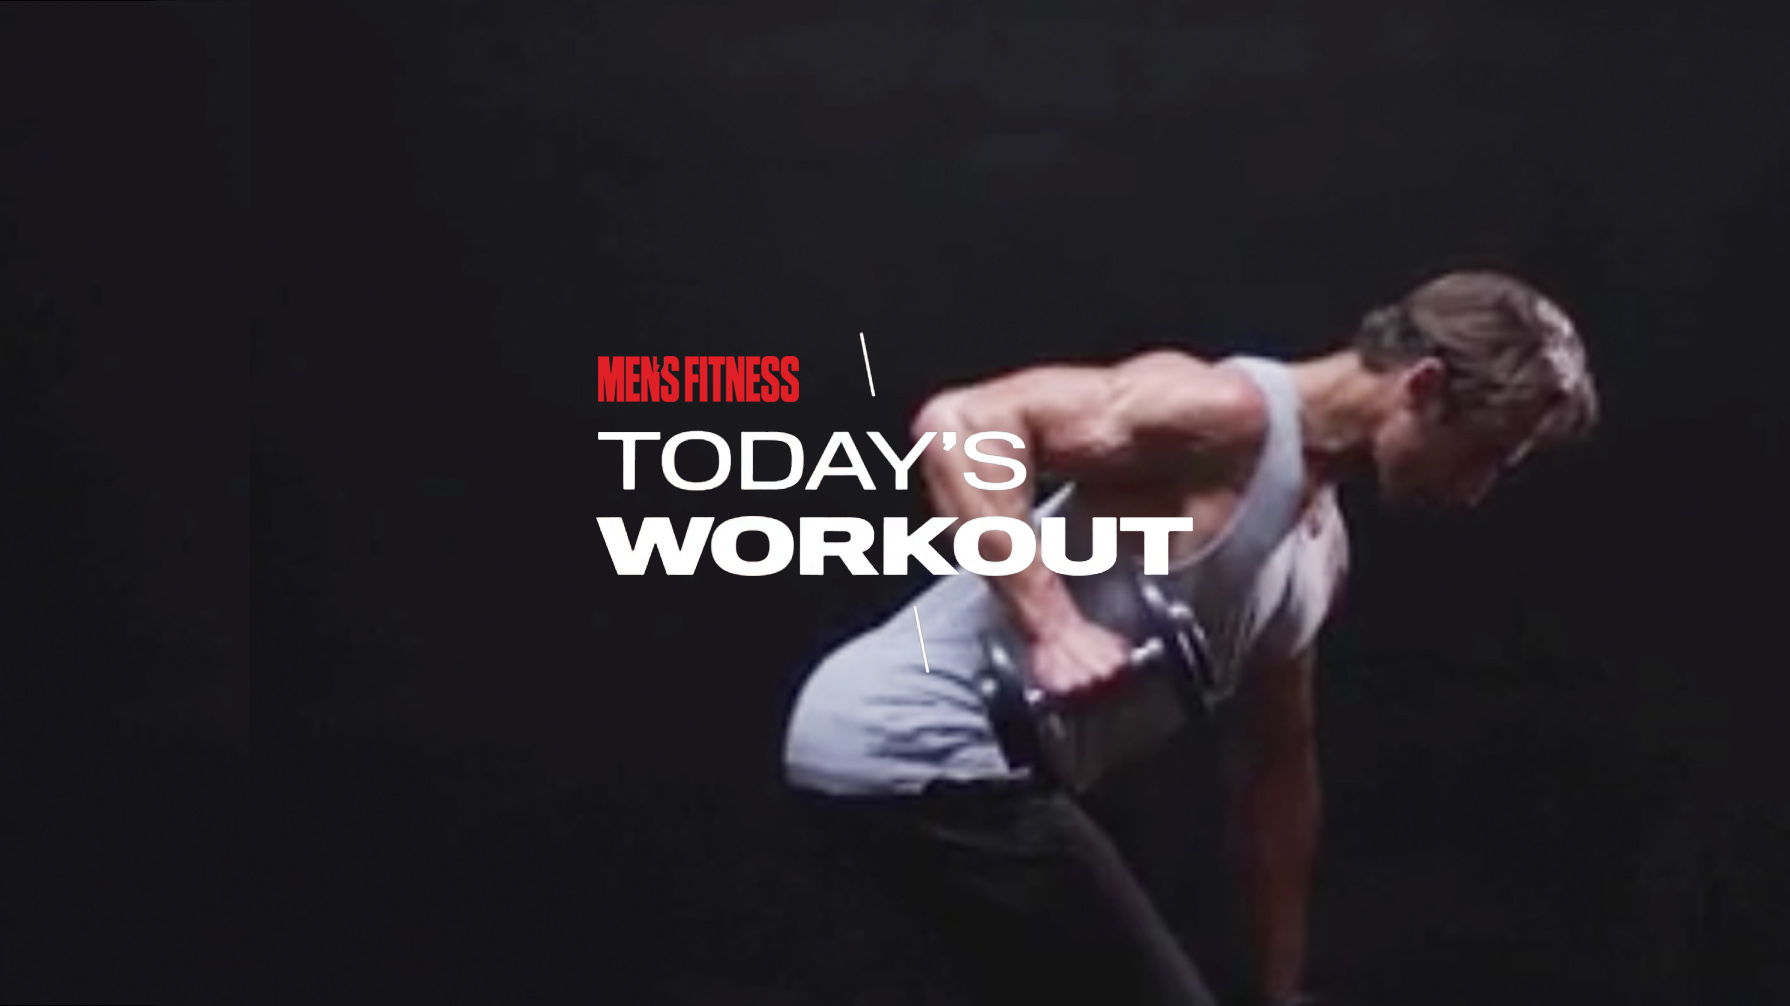 Today's Workout 16: The dumbbell circuit to build total-body muscle